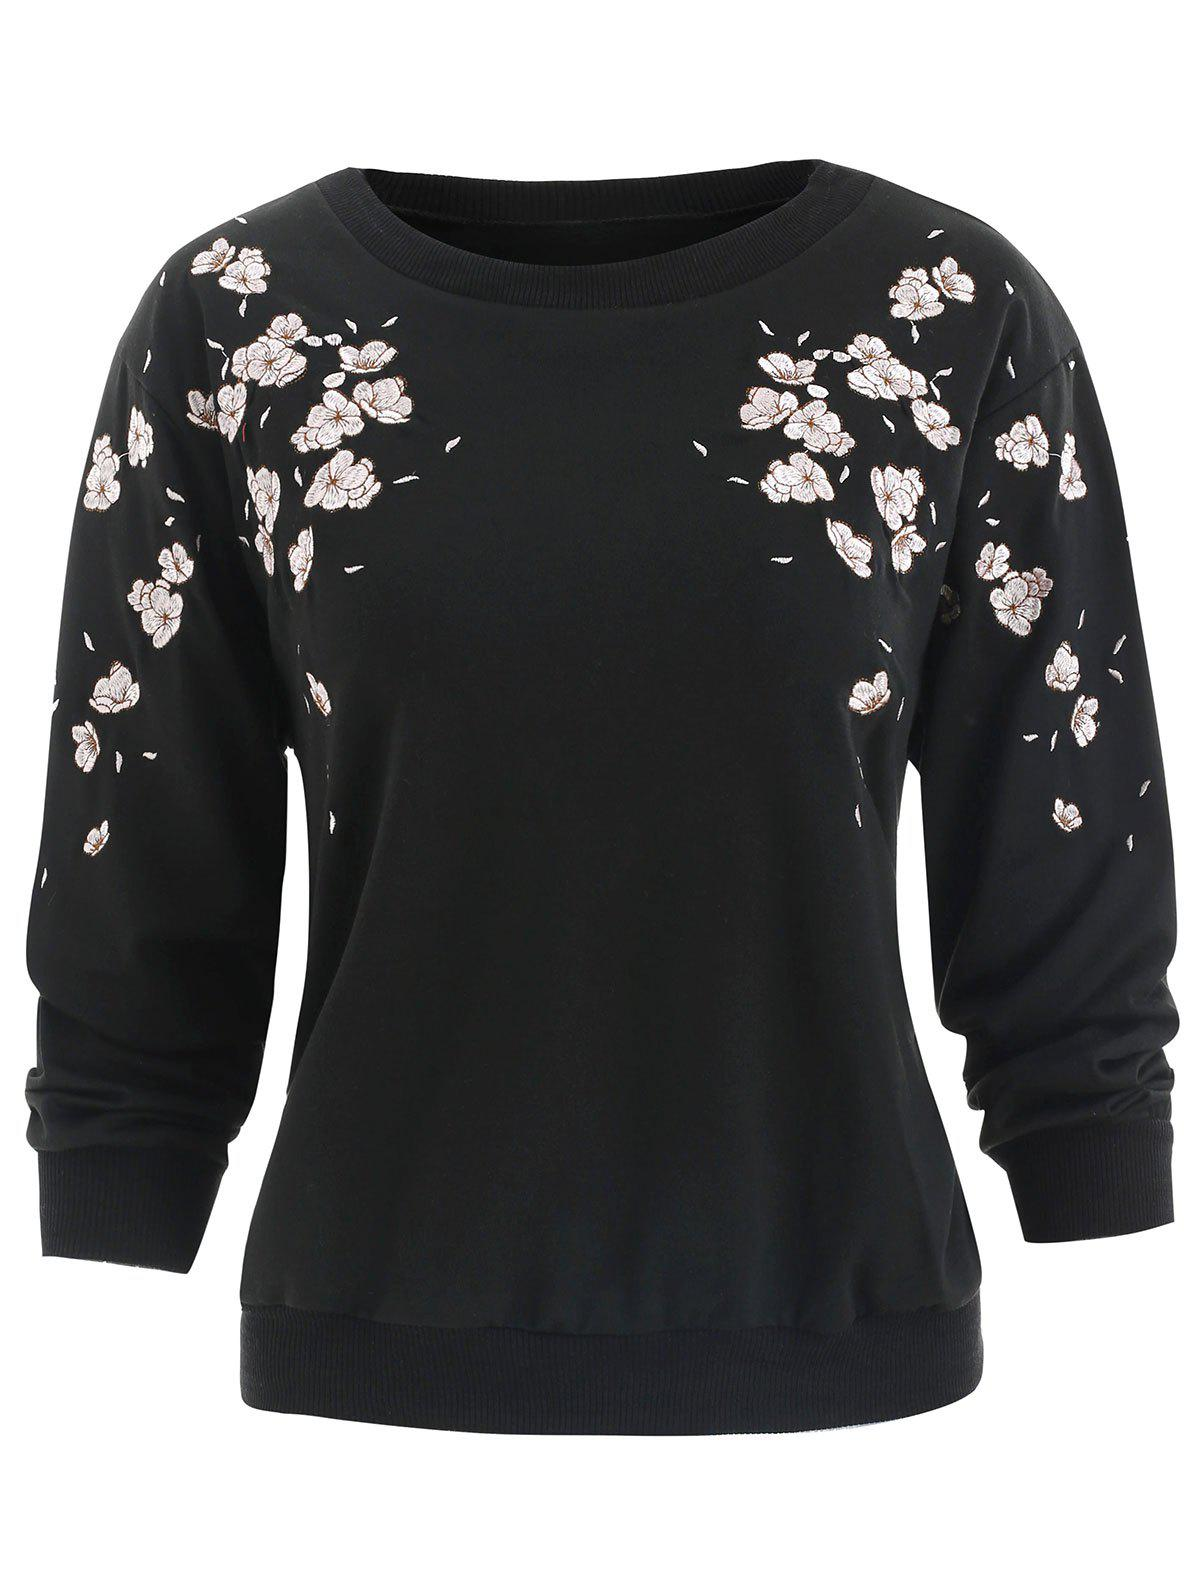 Shops Floral Embroidery Drop Shoulder Sweatshirt